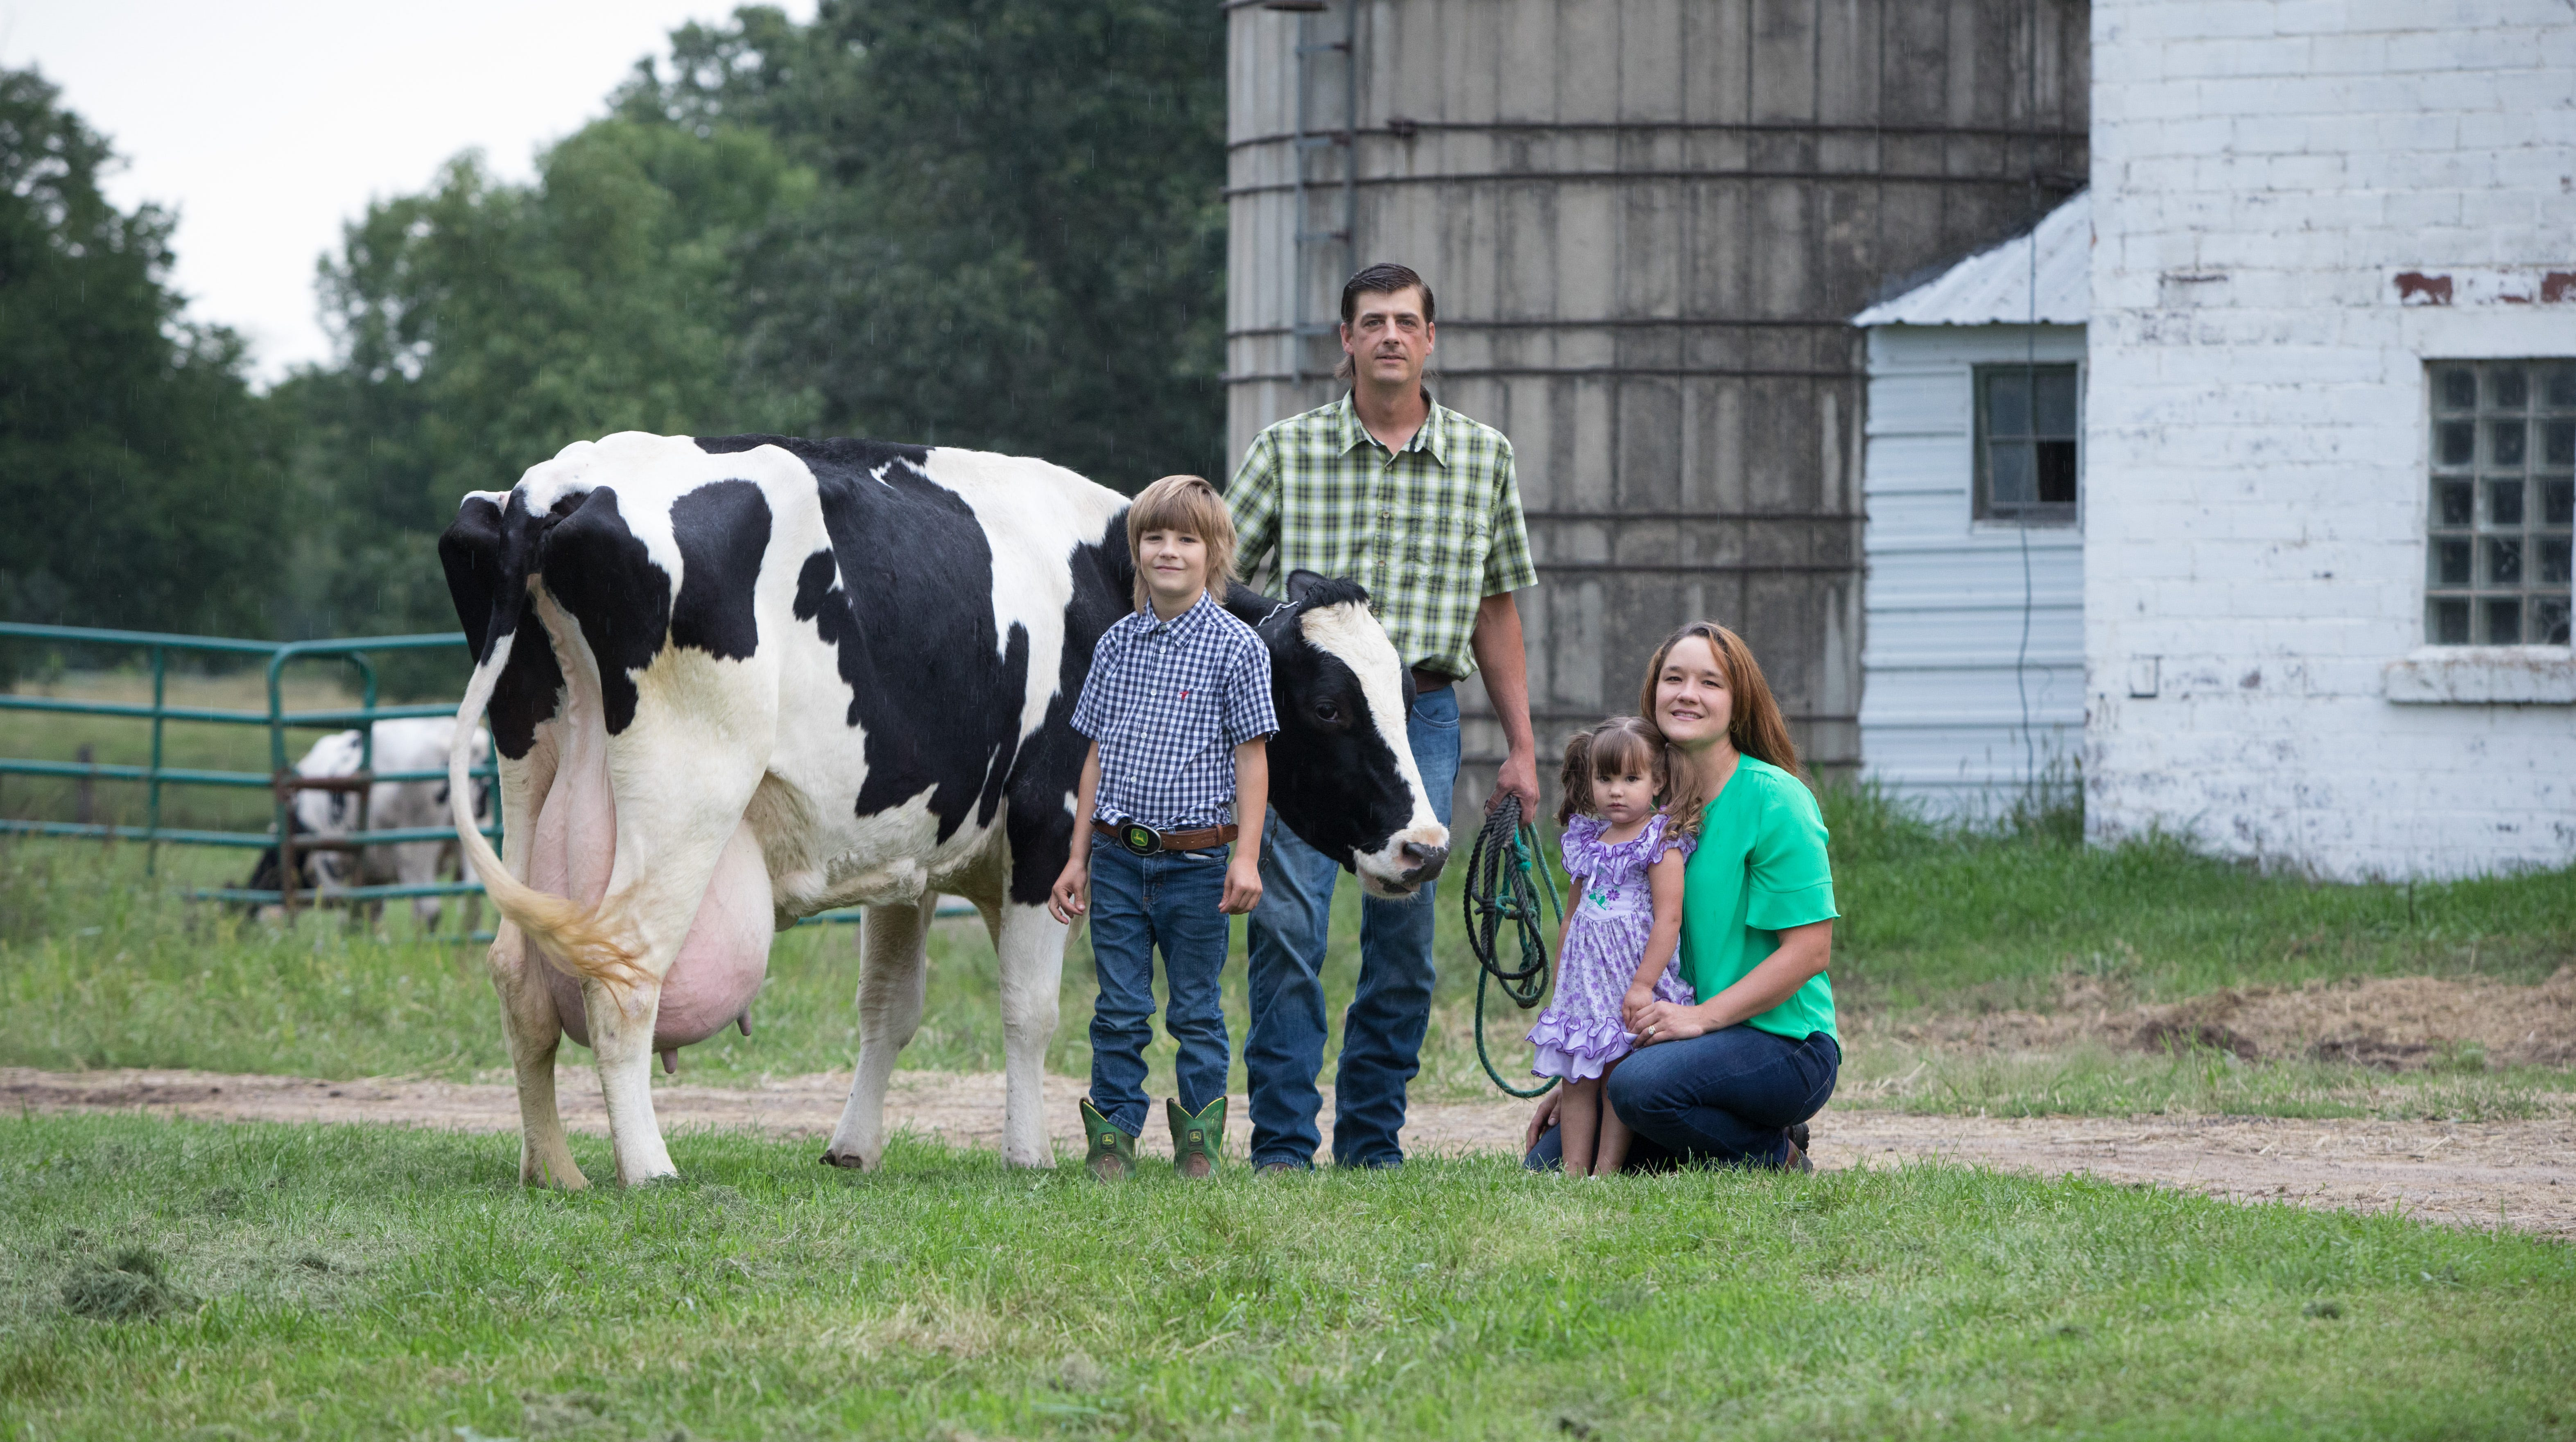 Brenda and Nathan Rudolph with their children Everett , 9, and Vivian, 4, on their Morrison County dairy farm.